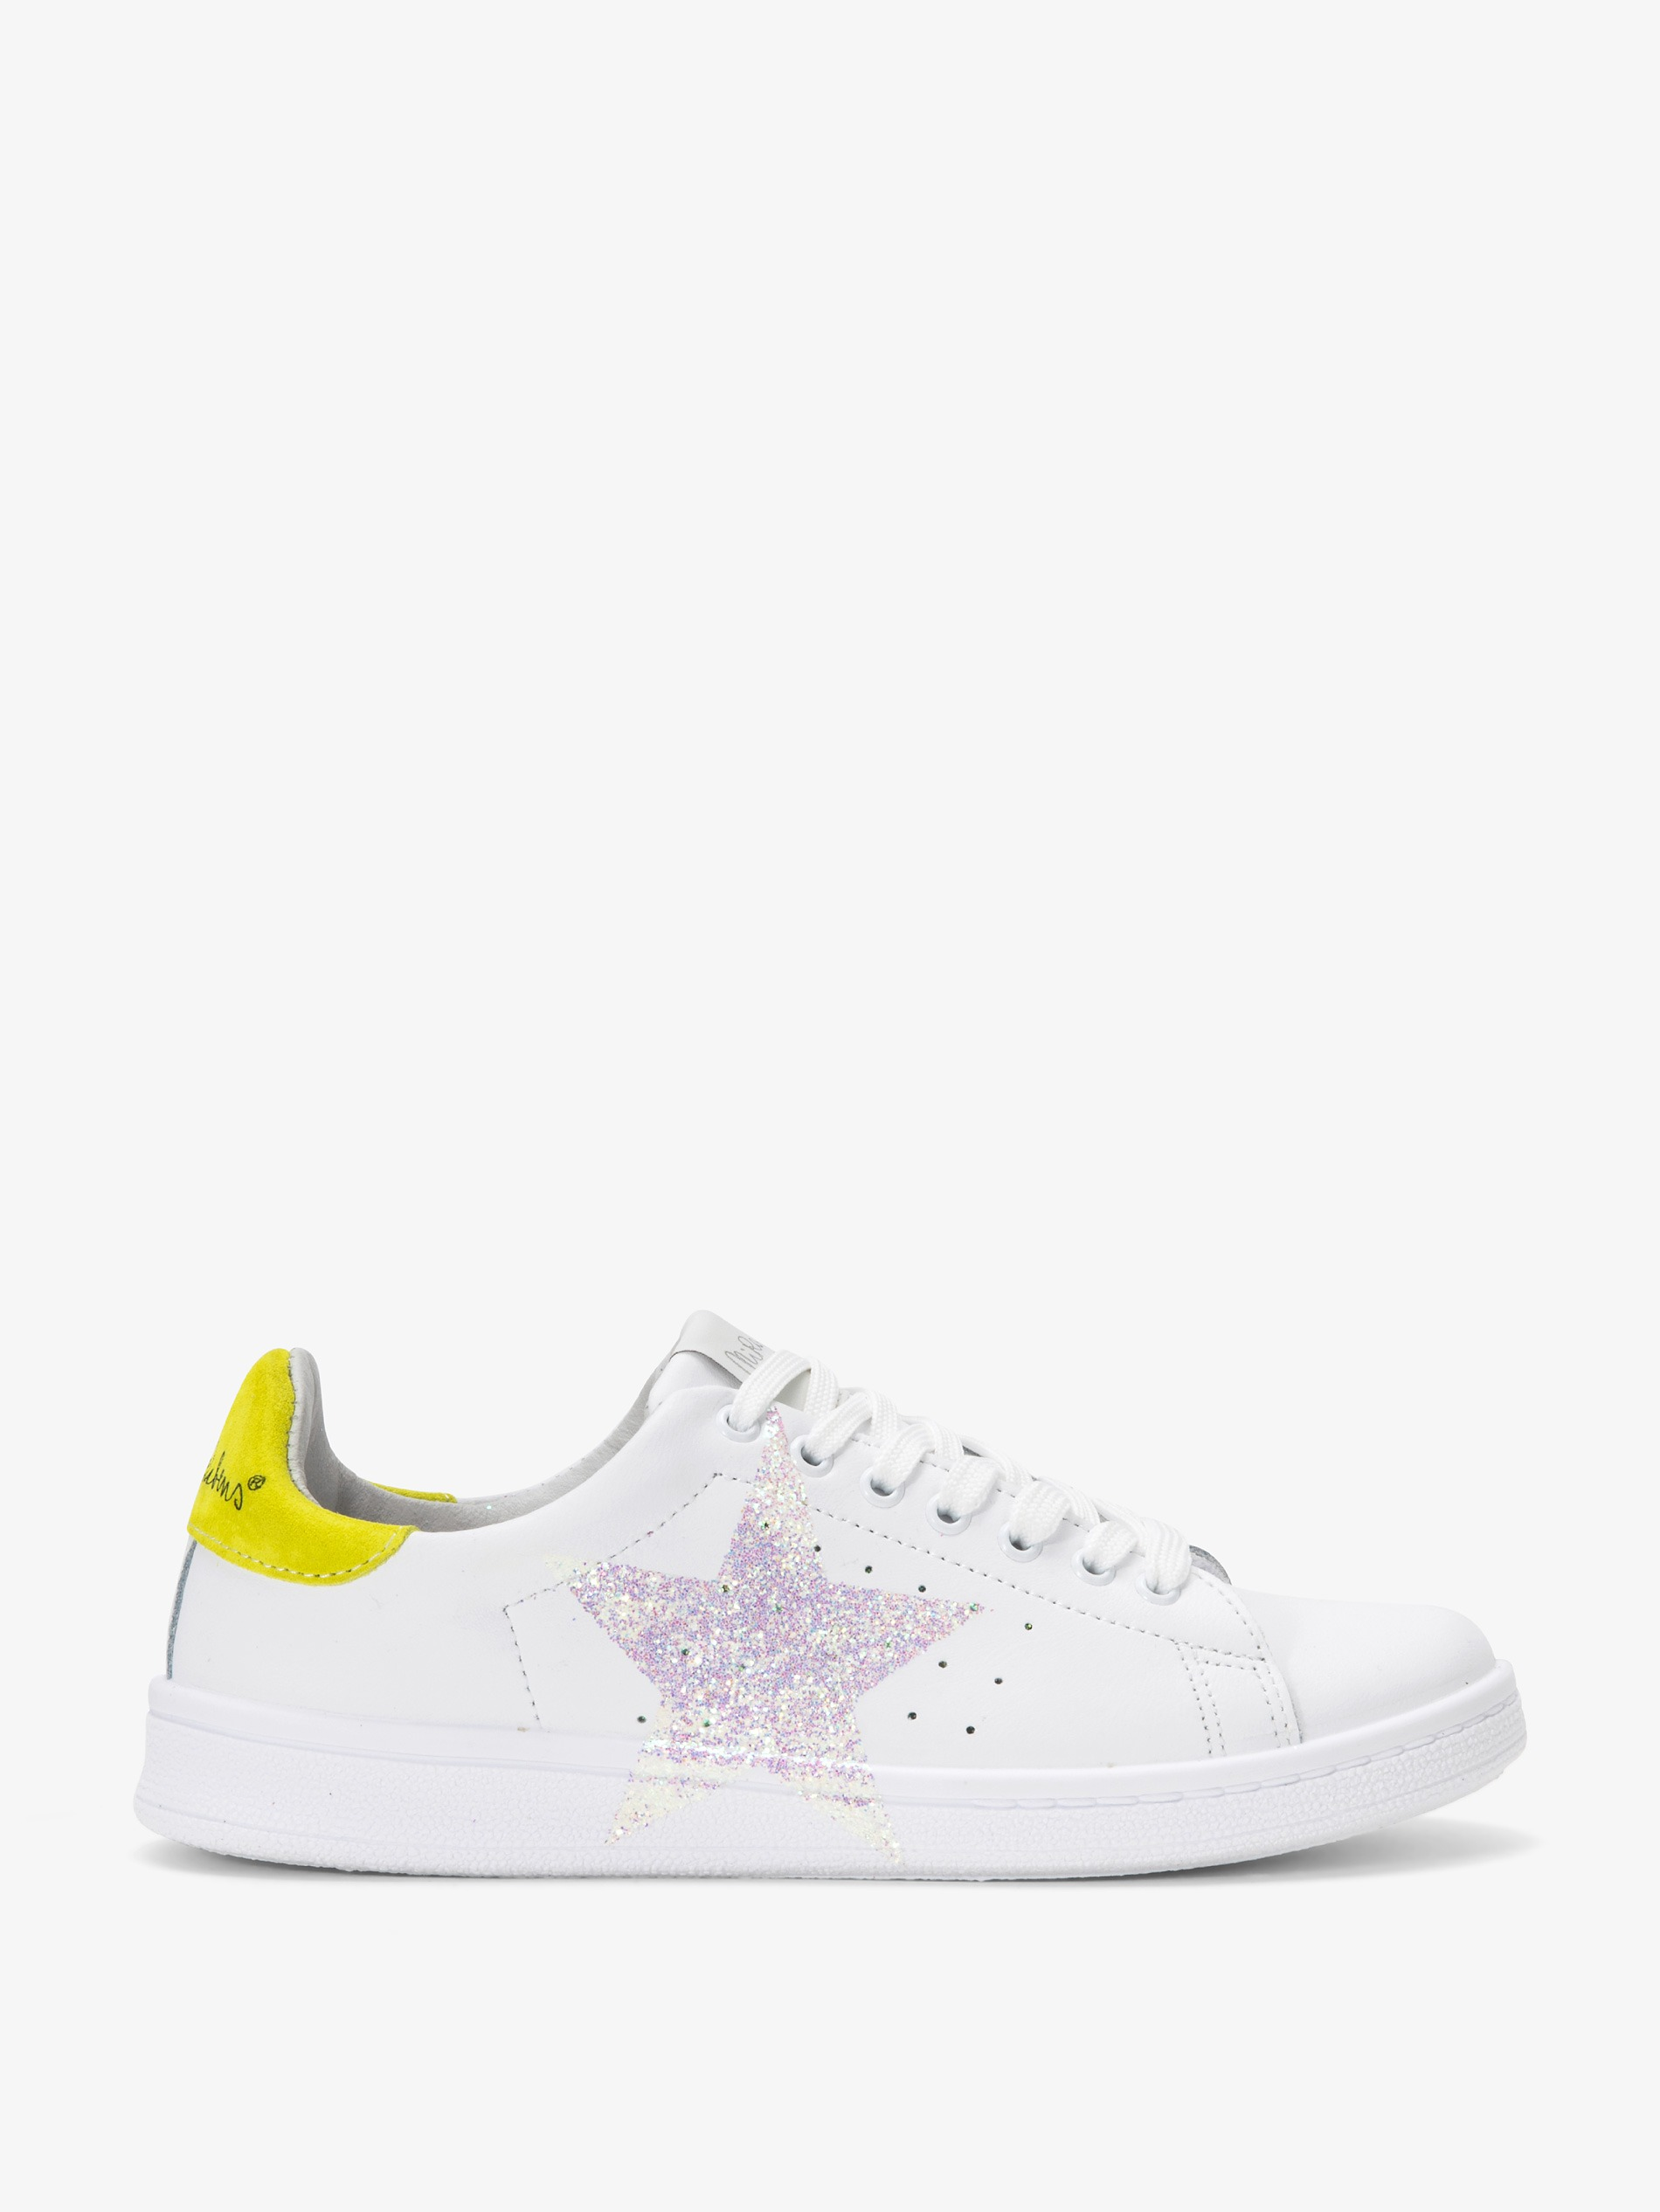 FOOTWEAR - Low-tops & sneakers Mother Of Pearl Amazing Price Outlet Store Online Professional Cheap Price z3bJ4nNAOT